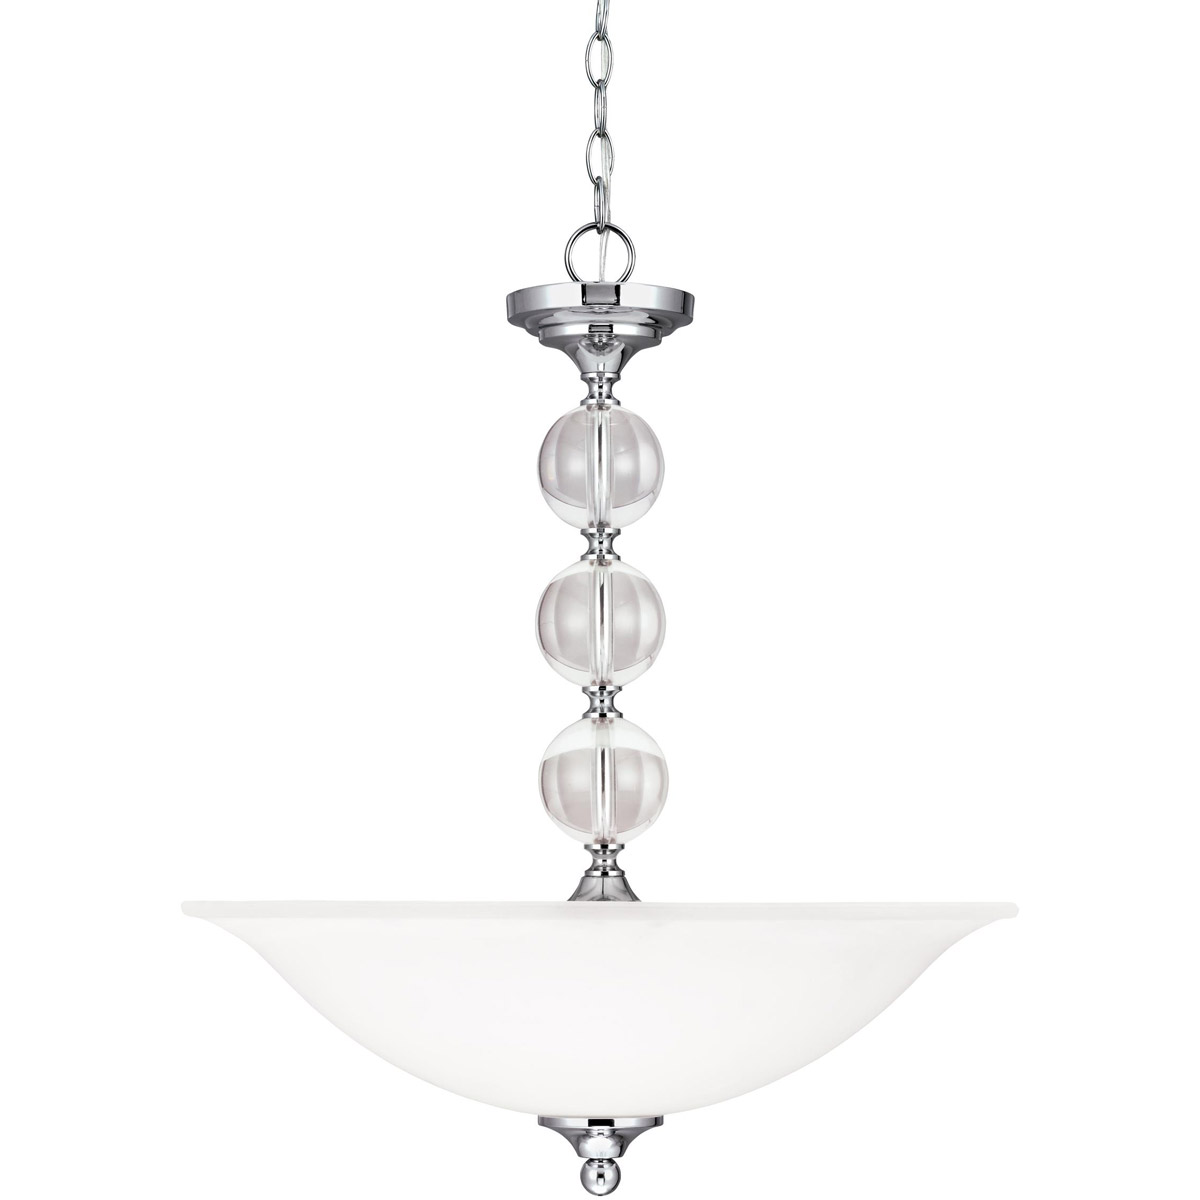 Sea Gull 6613403BLE-05 Englehorn 3 Light 20 inch Chrome / Optic Crystal Pendant Ceiling Light in Fluorescent photo